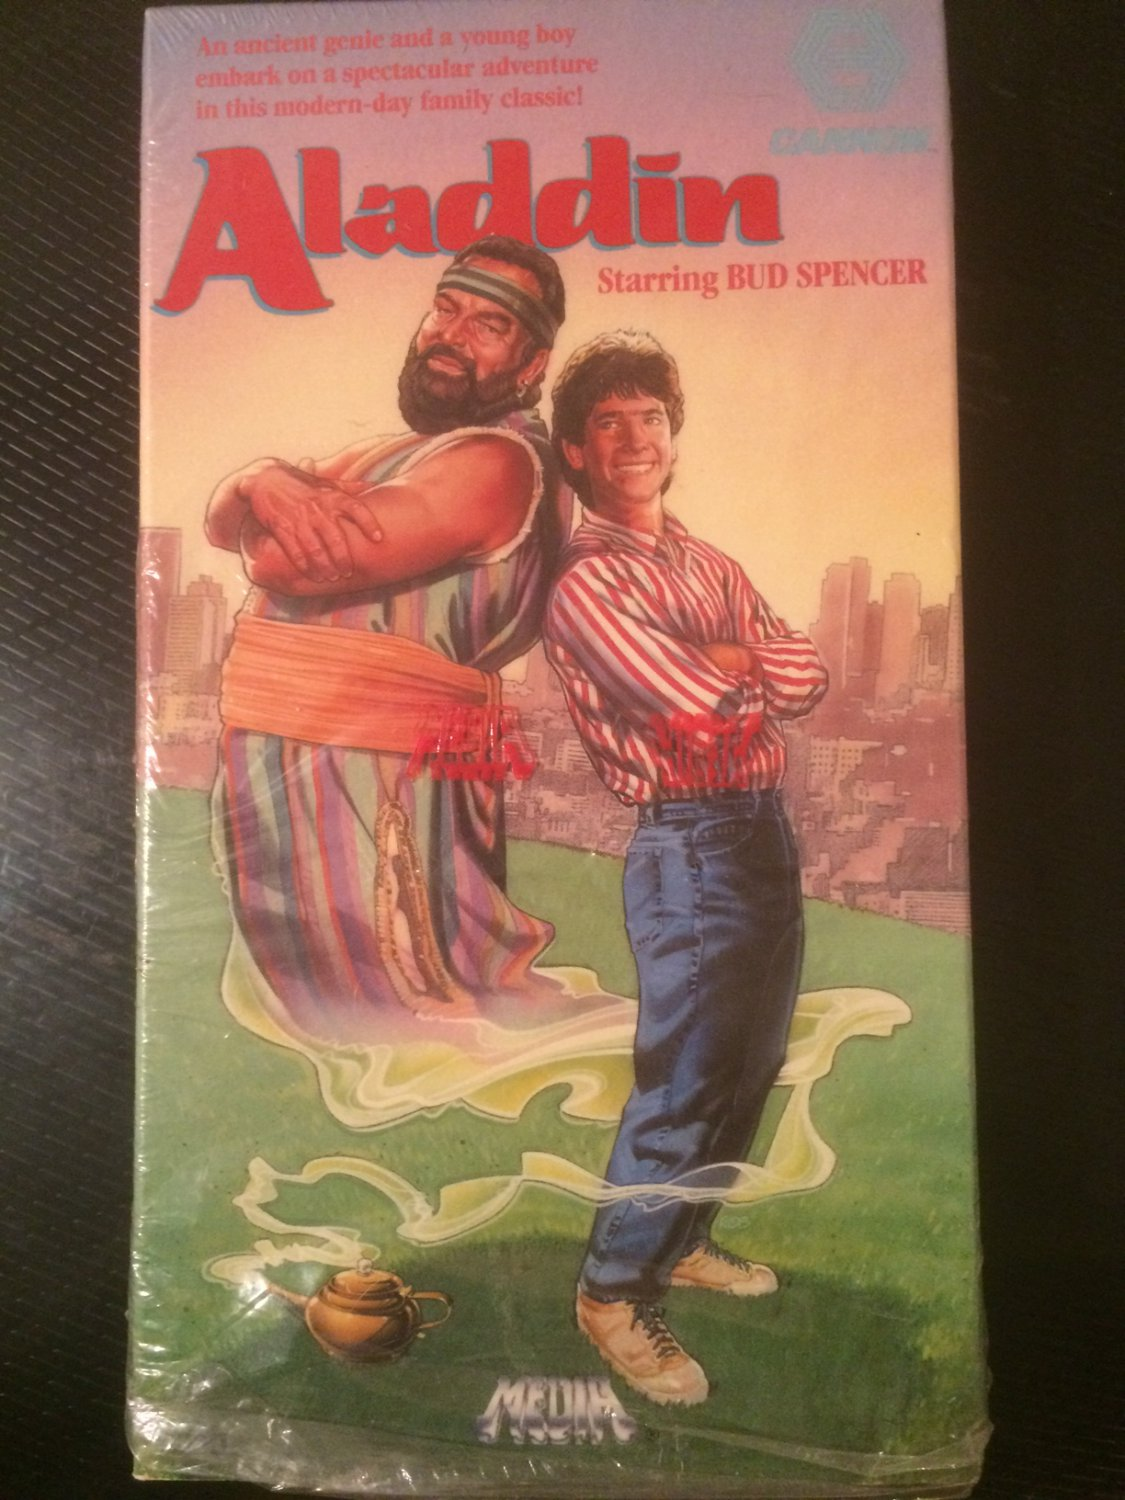 VHS - Aladdin (Bud Spencer) - Used - NOT ON DVD